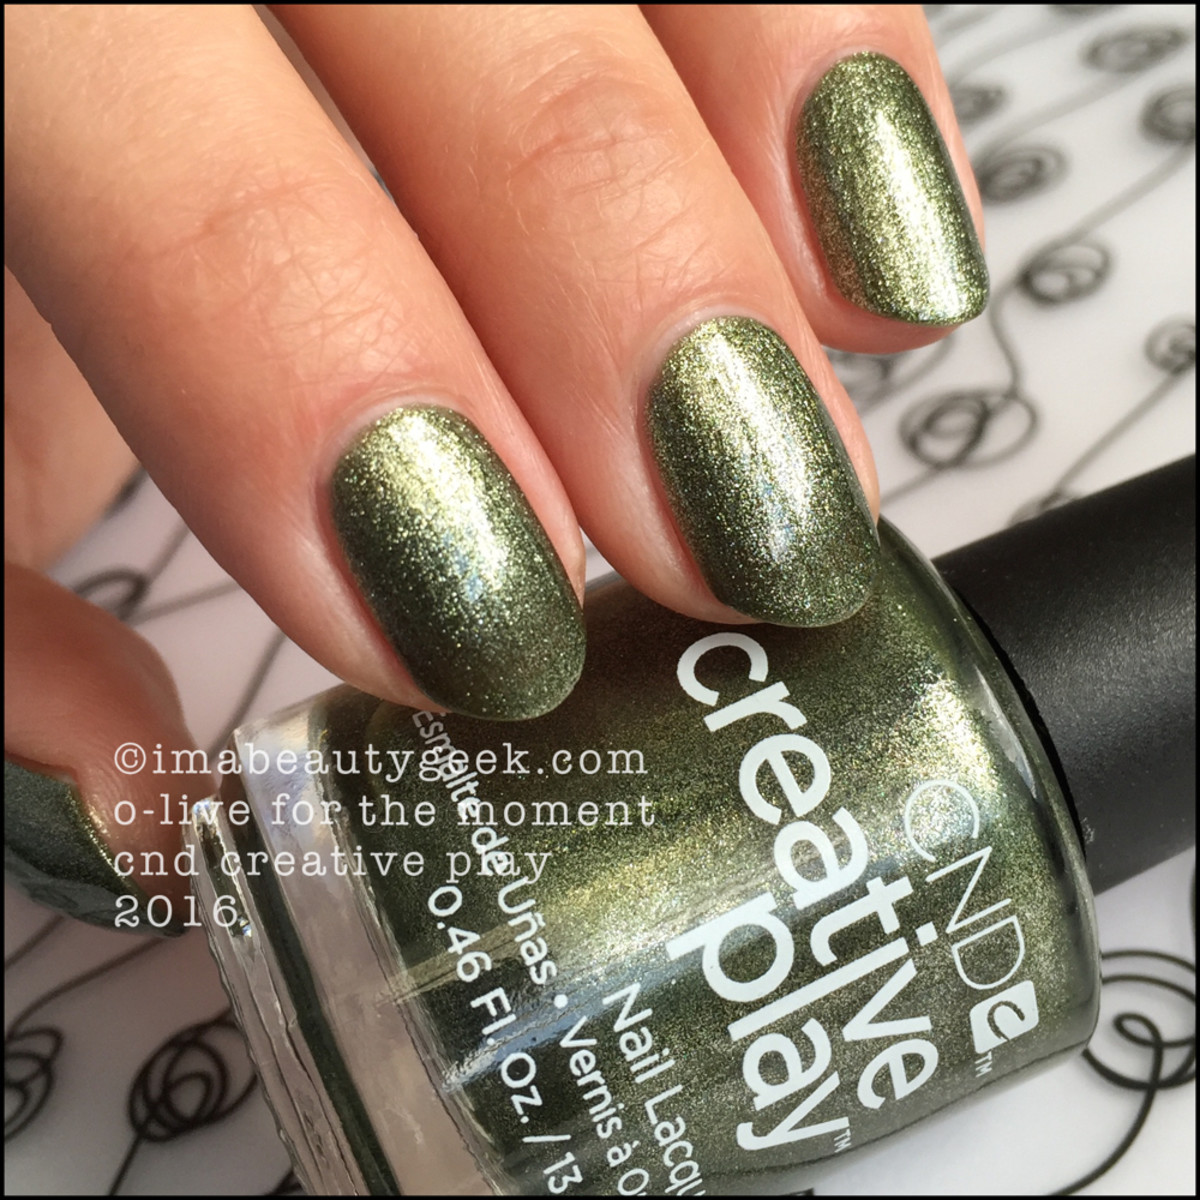 CND Creative Play Olive for the Moment_CND Creative Play Nail Polish Swatches